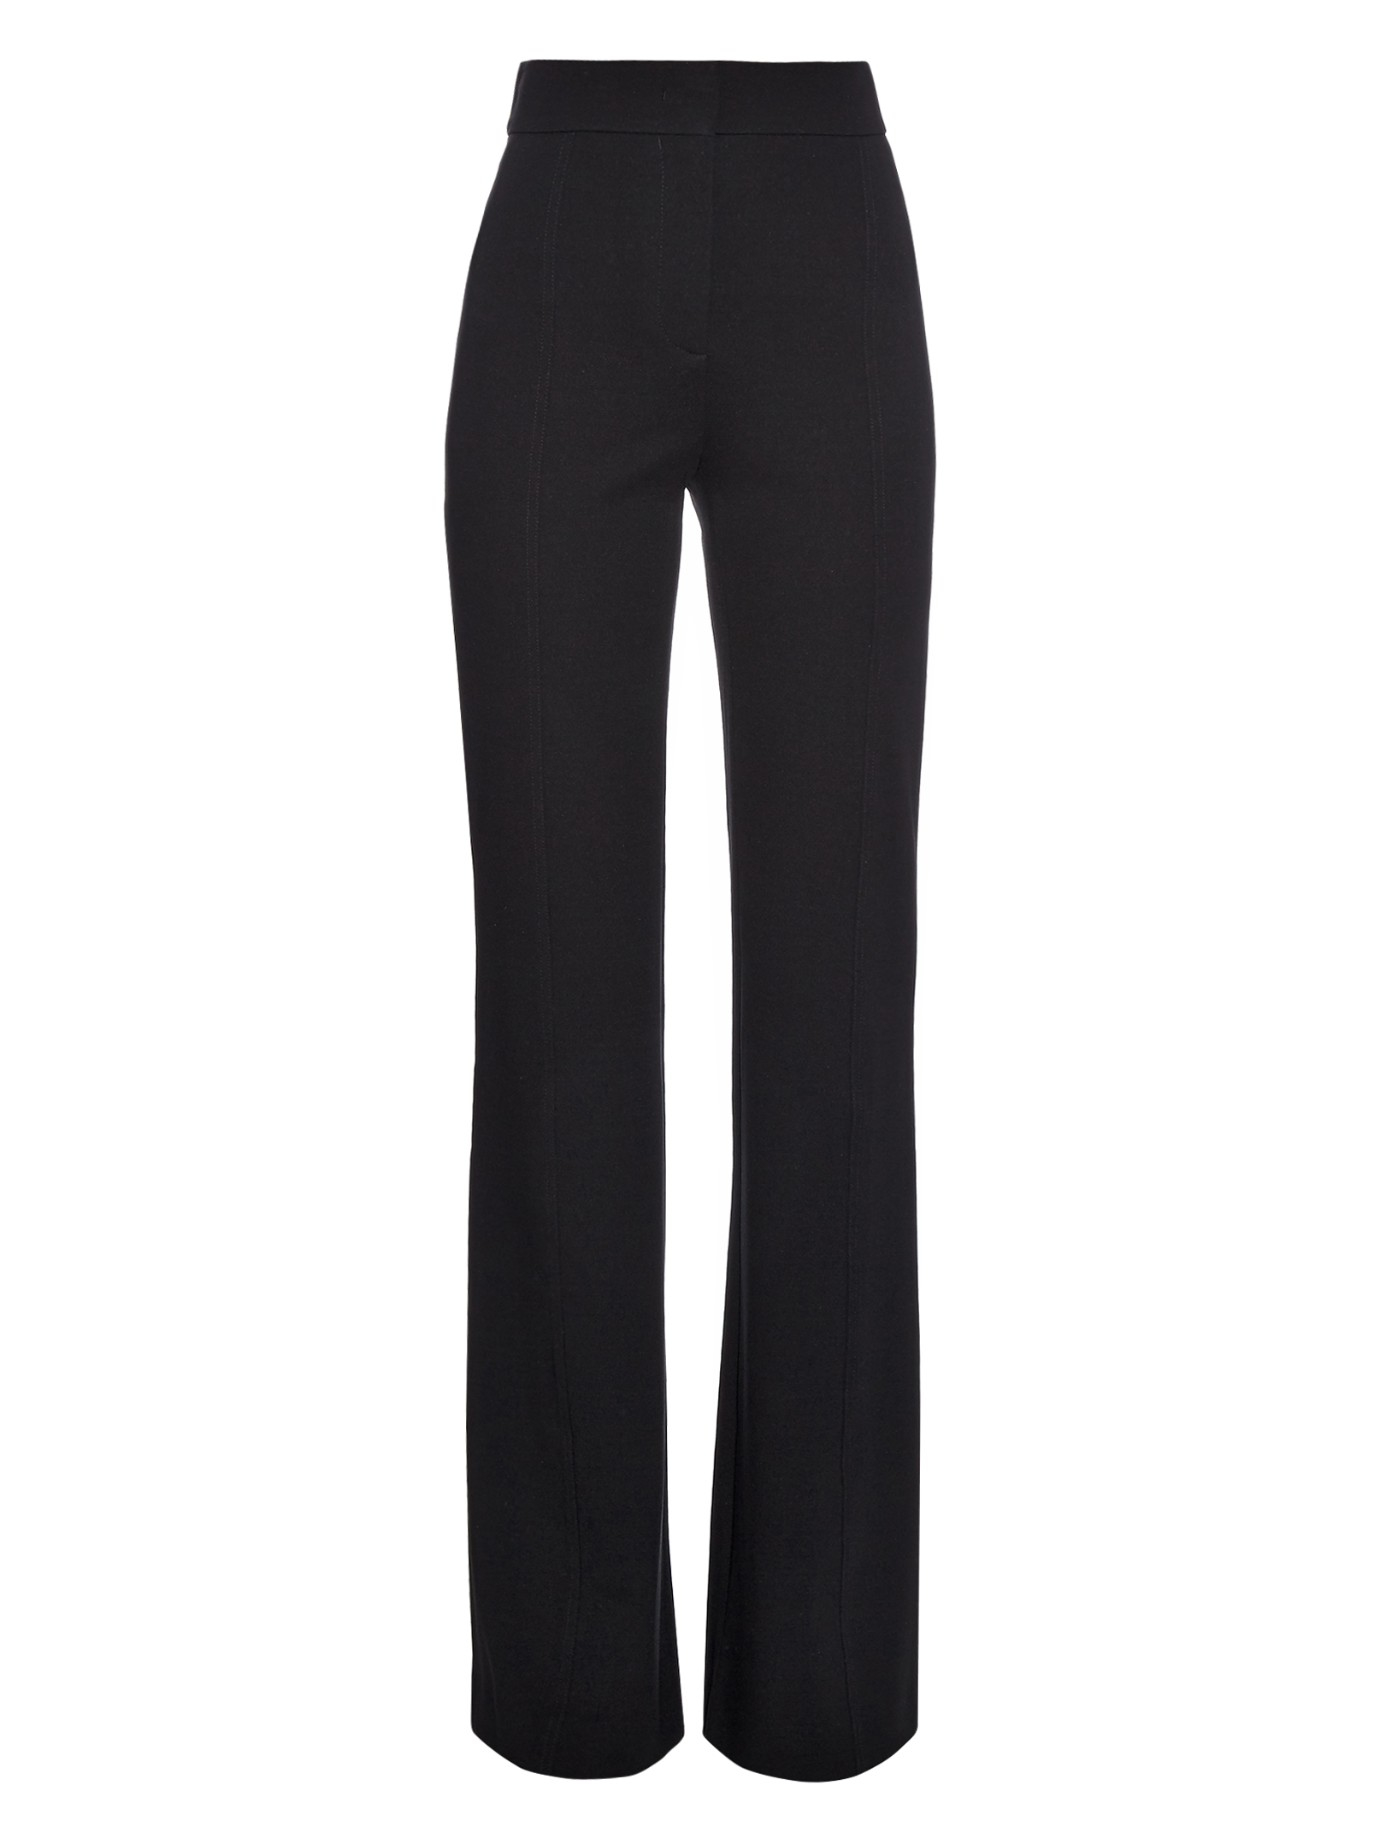 Derek lam High Waist Wide-leg Trousers in Black | Lyst